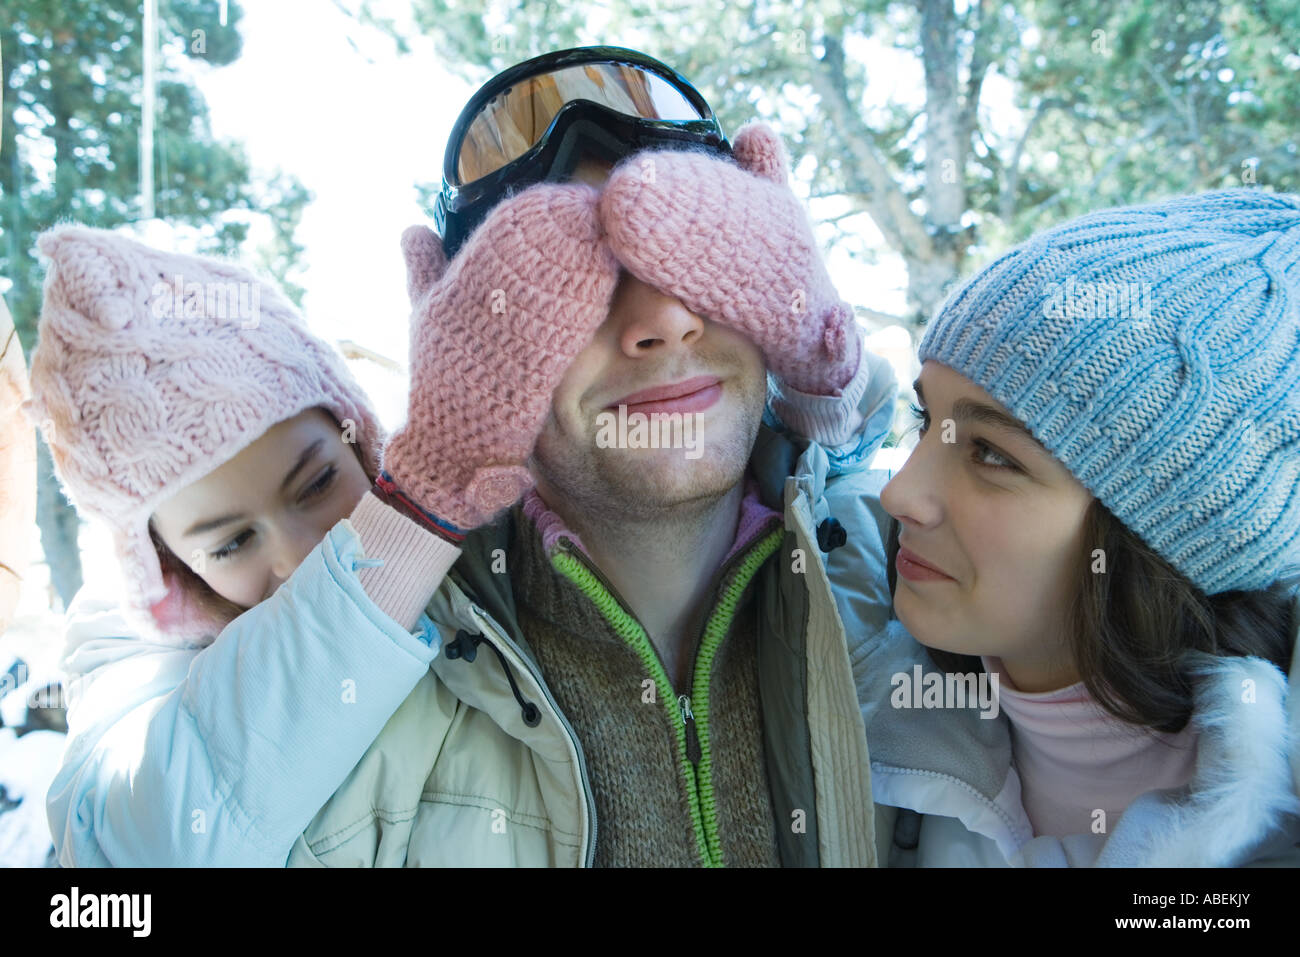 Teen girls with young man, one covering his eyes - Stock Image